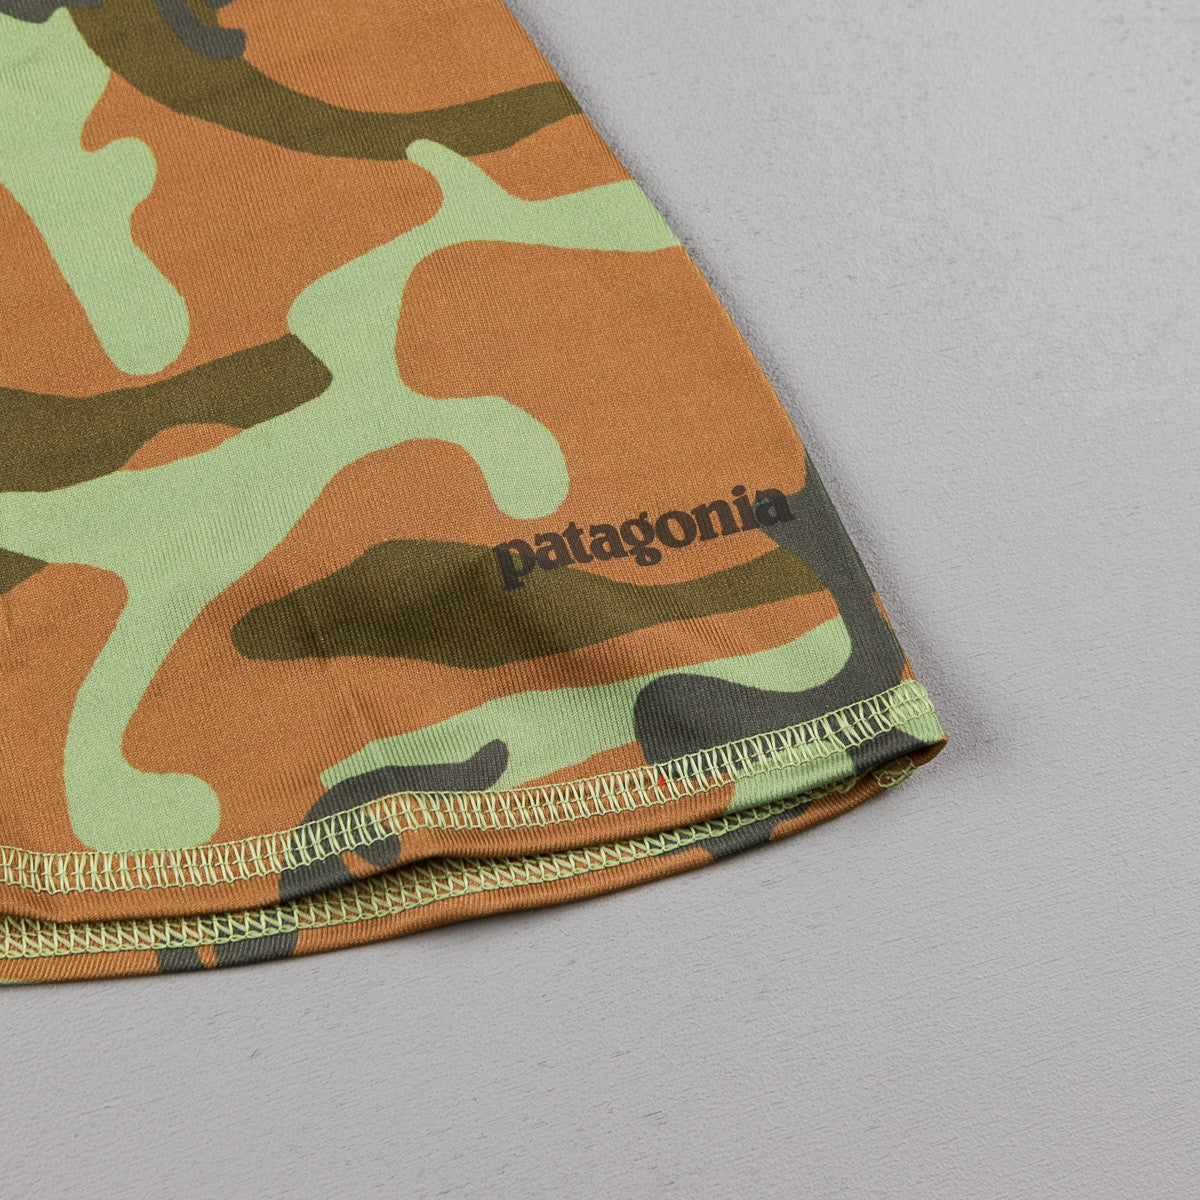 Patagonia Sun Mask - Forest Camo: Ash Tan